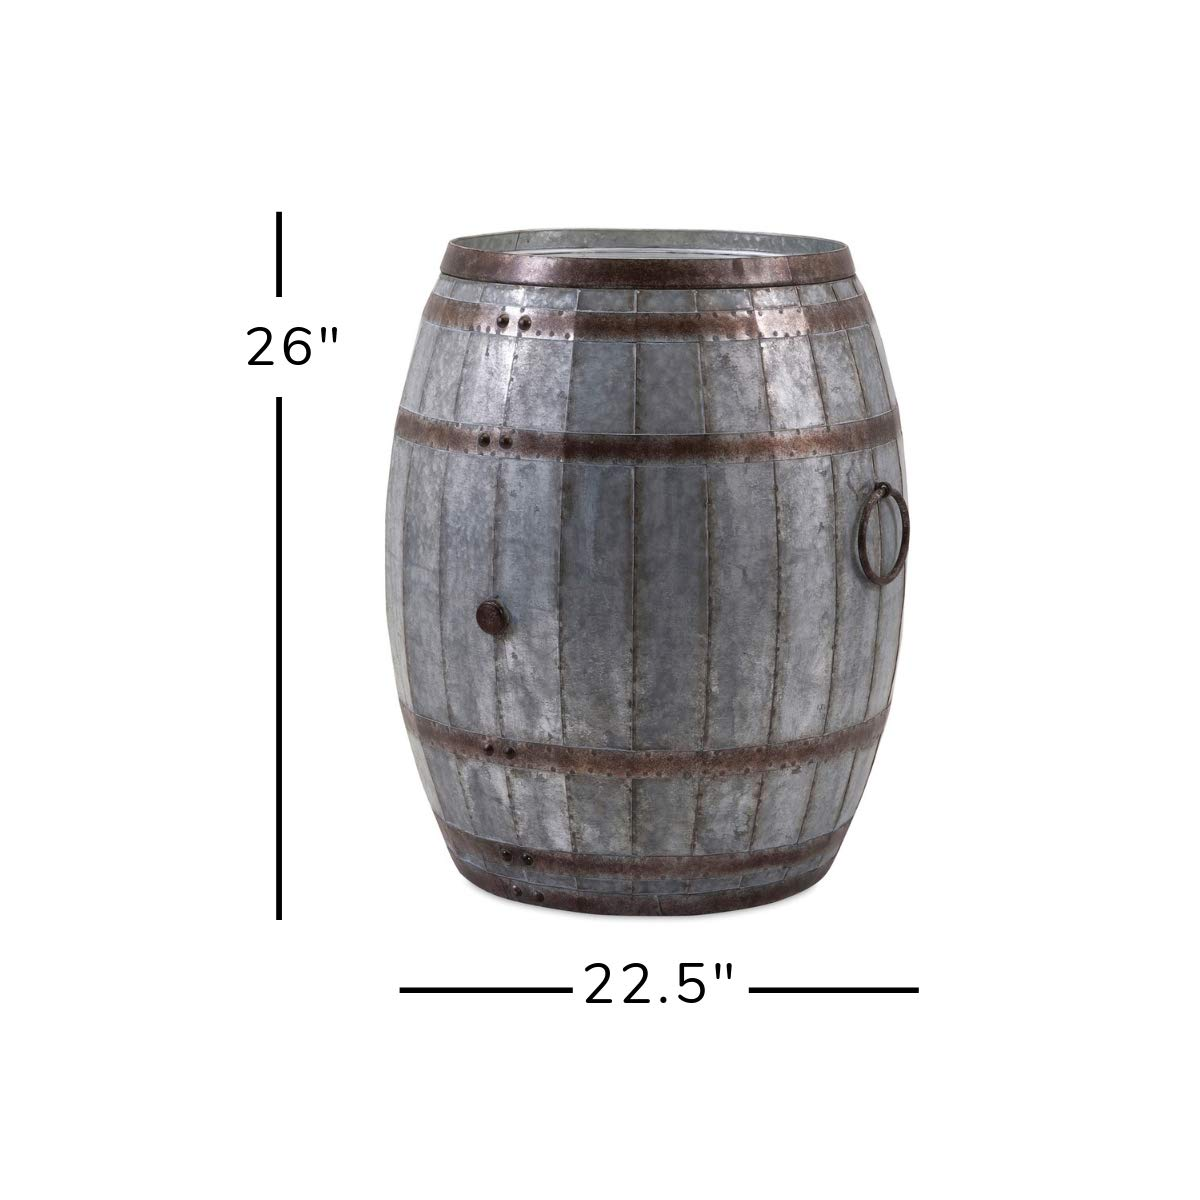 IMAX 88707 Vineyard Wine Barrel Storage Table – Vintage Inspired Iron Barrel, Rustic Metal Accent Table, Home Bar Furniture. Bar Cabinets